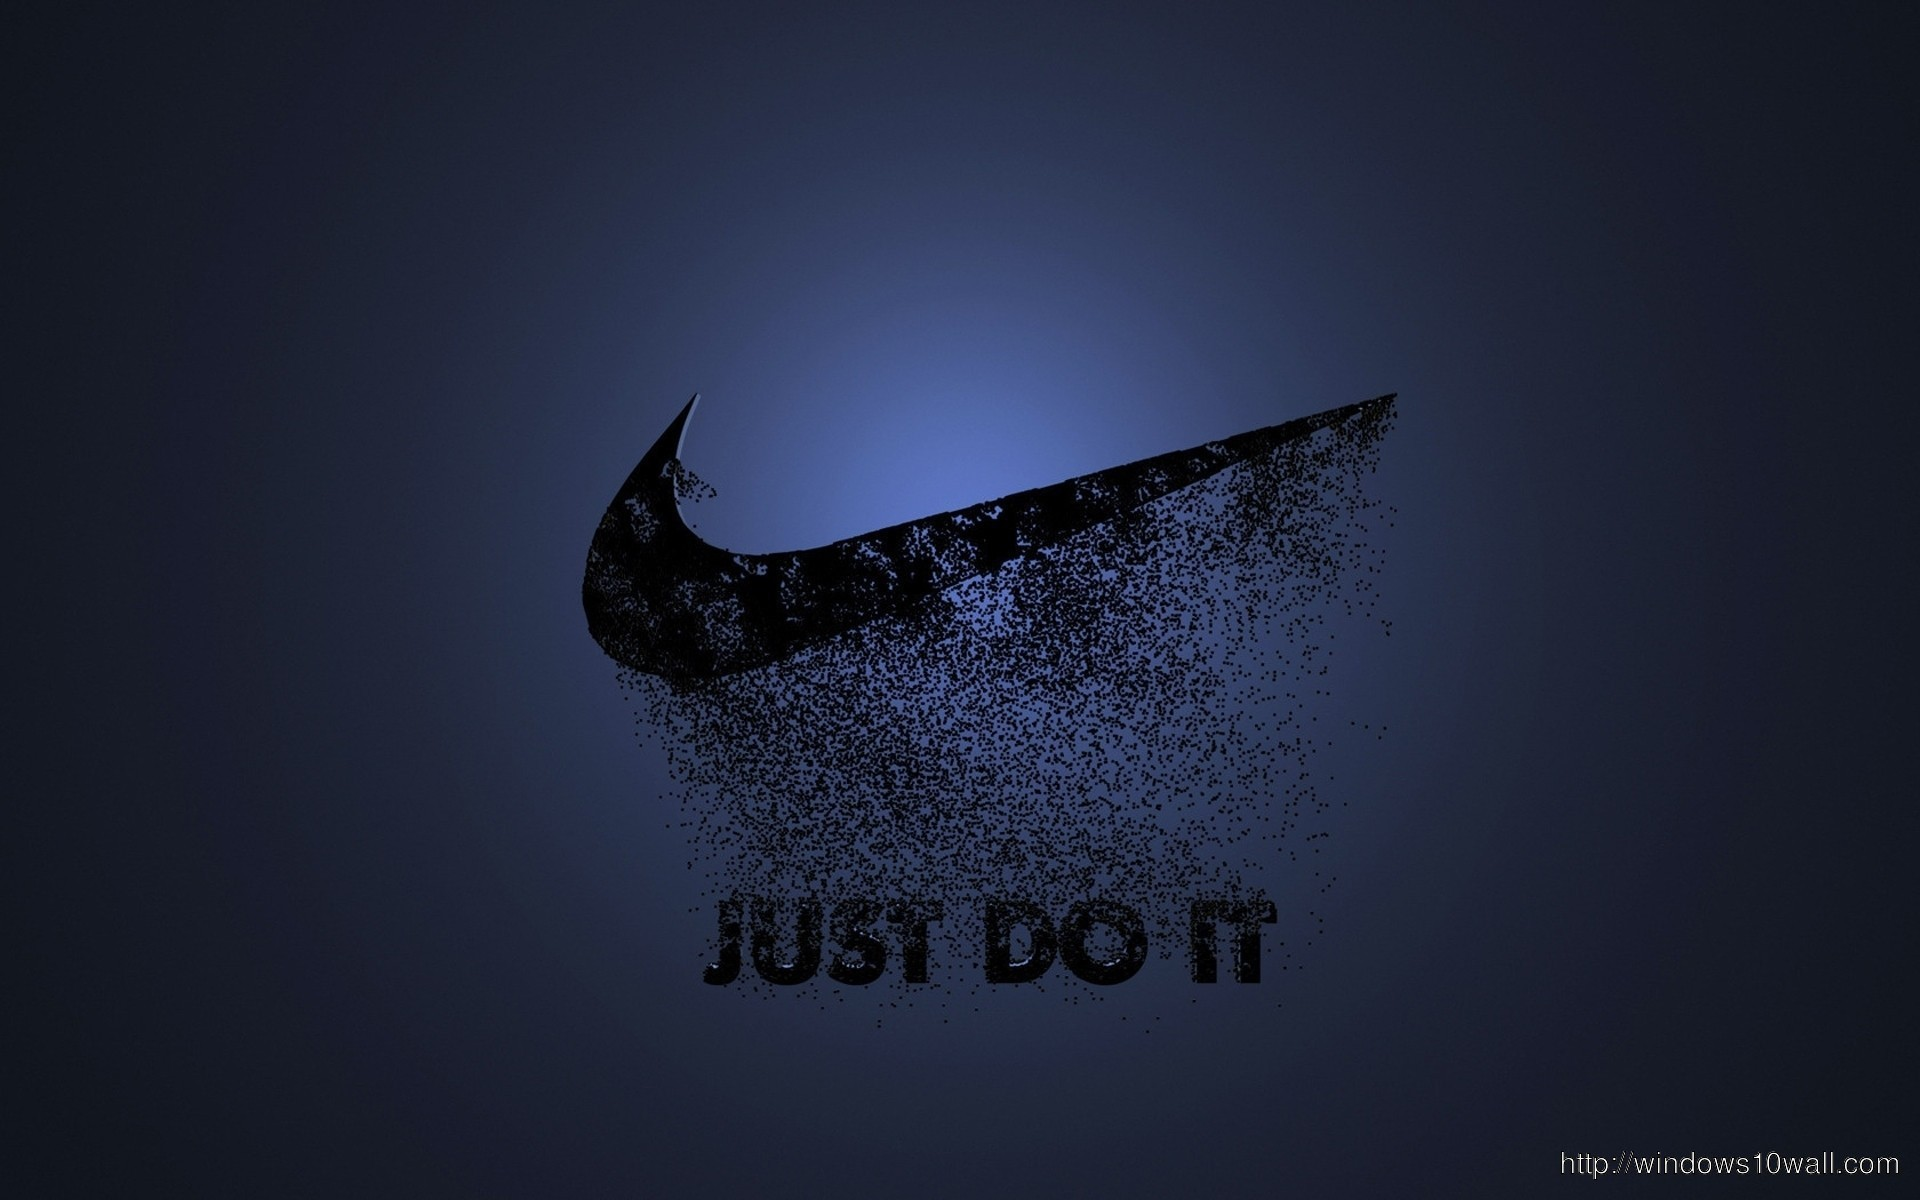 Funny Wallpapers Nature With Small Quotes Black Nike Just Do It Blue Background Wallpaper Windows